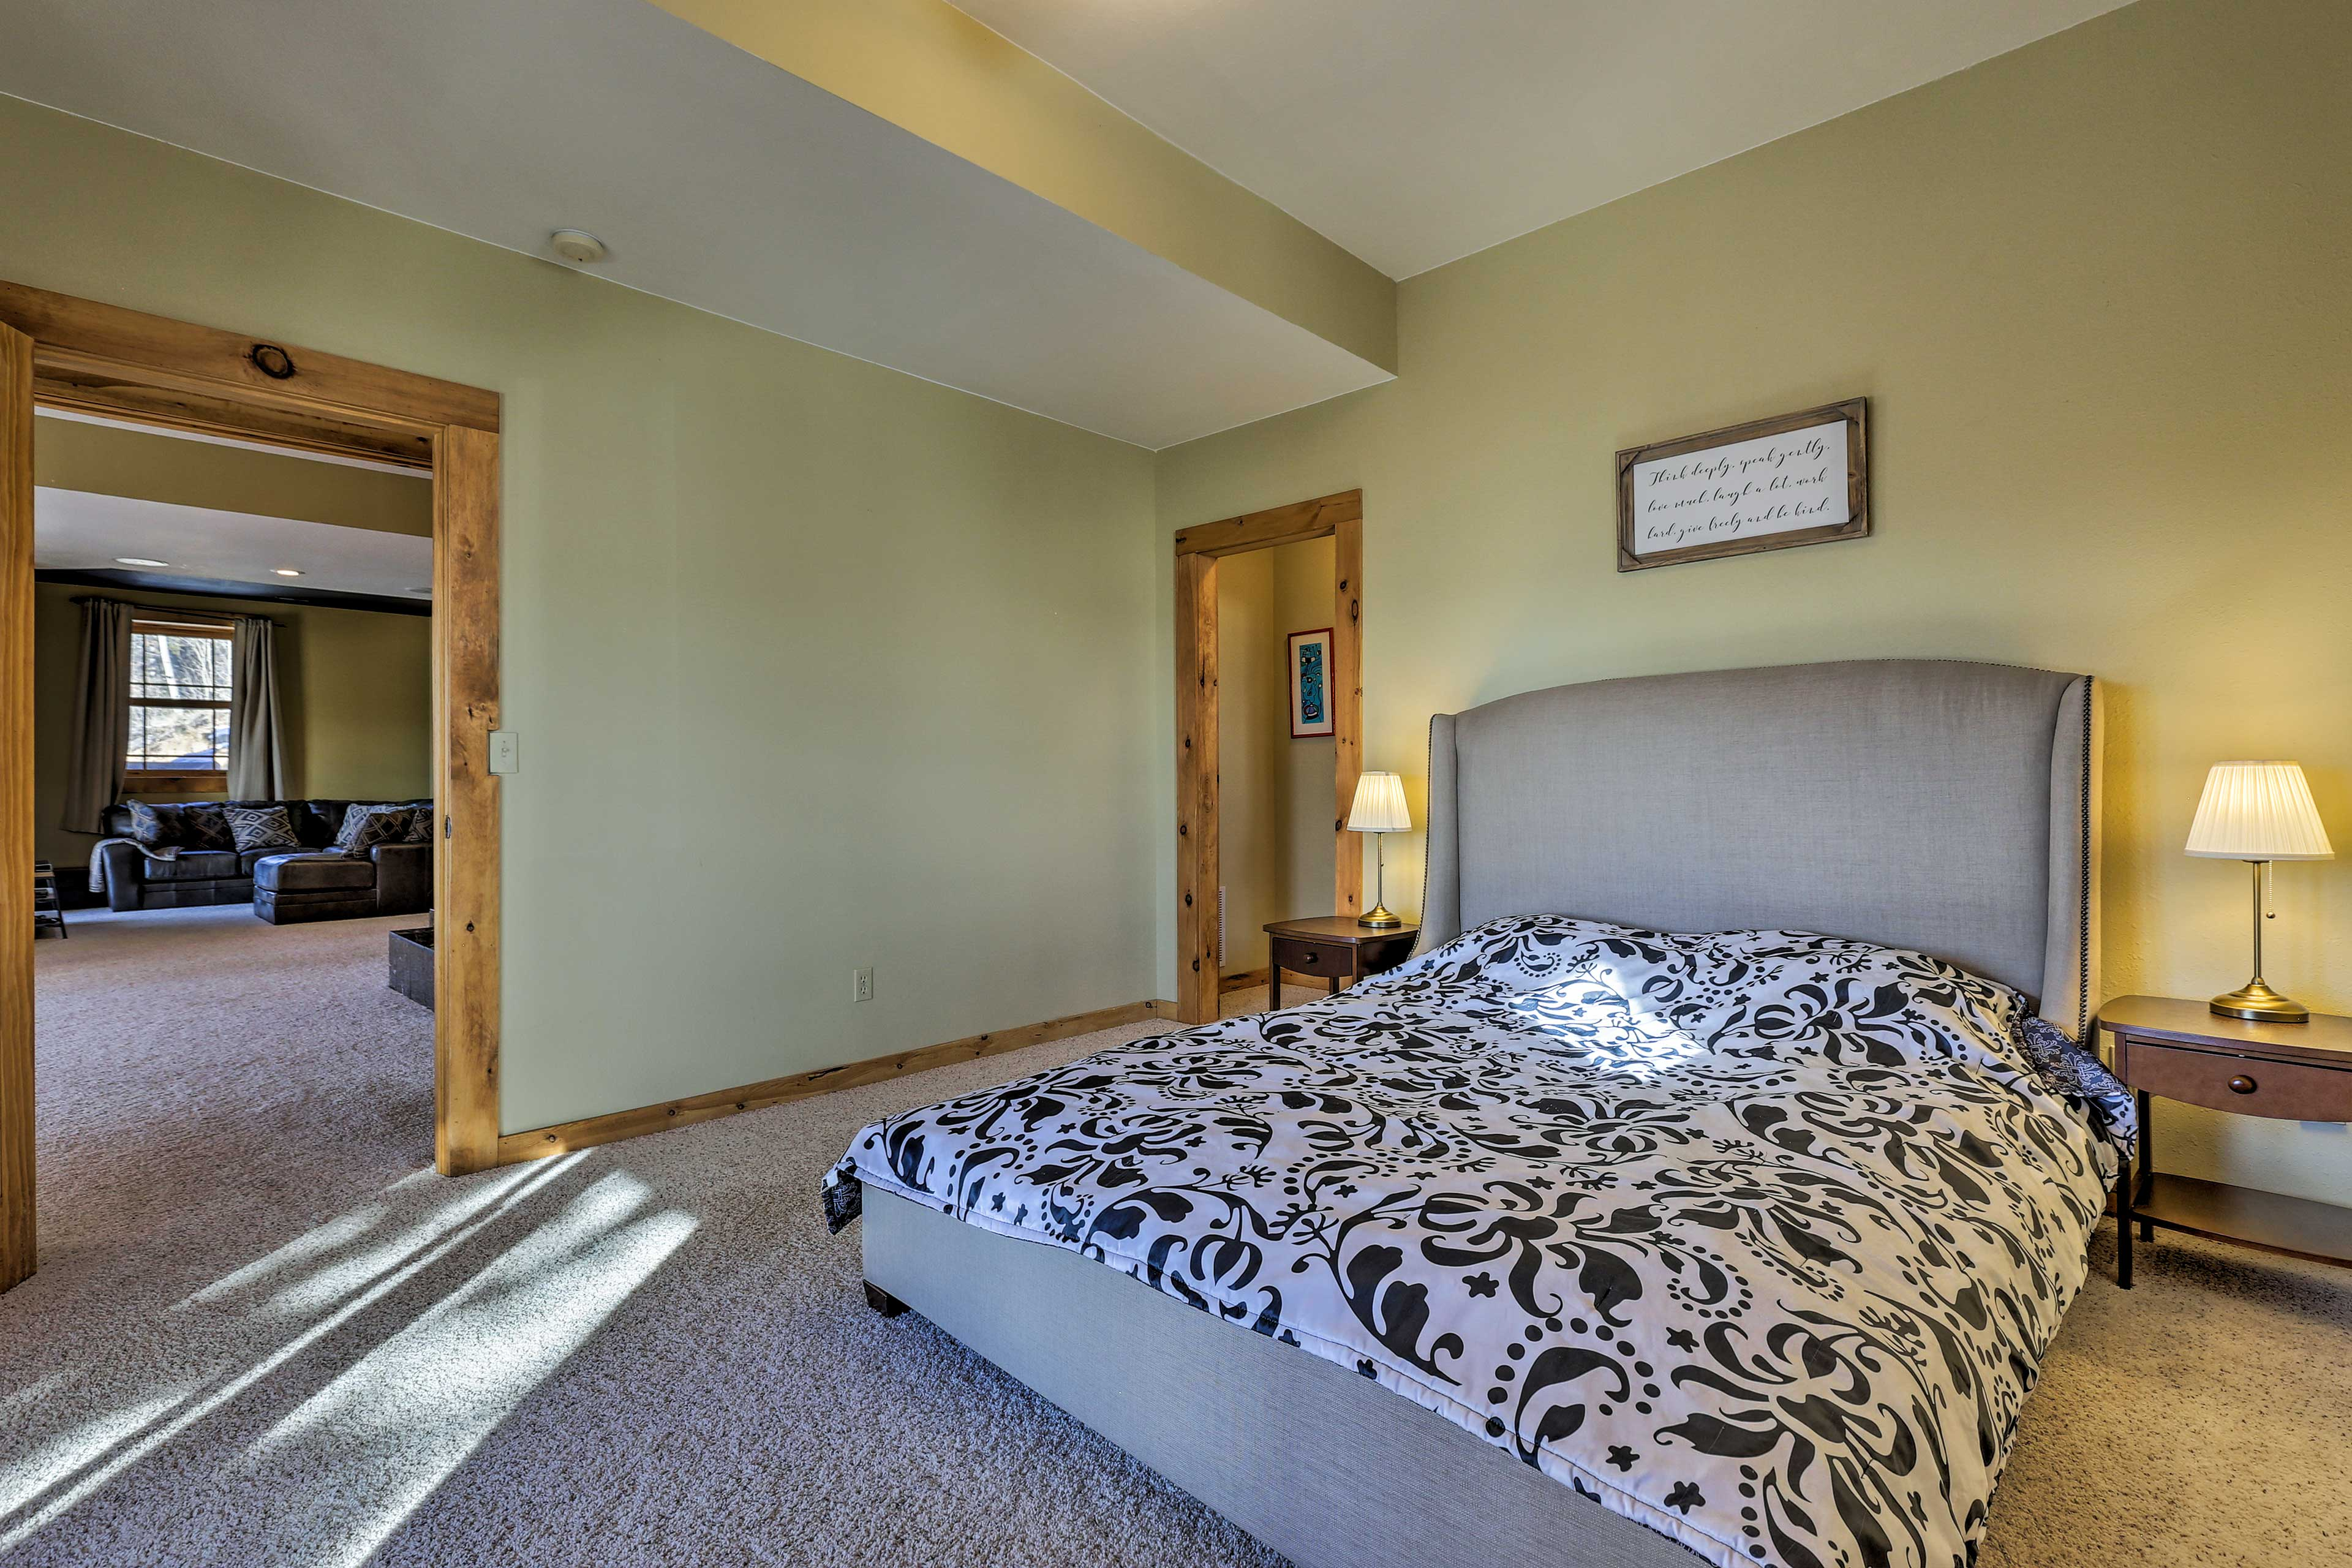 The room boasts a queen bed.